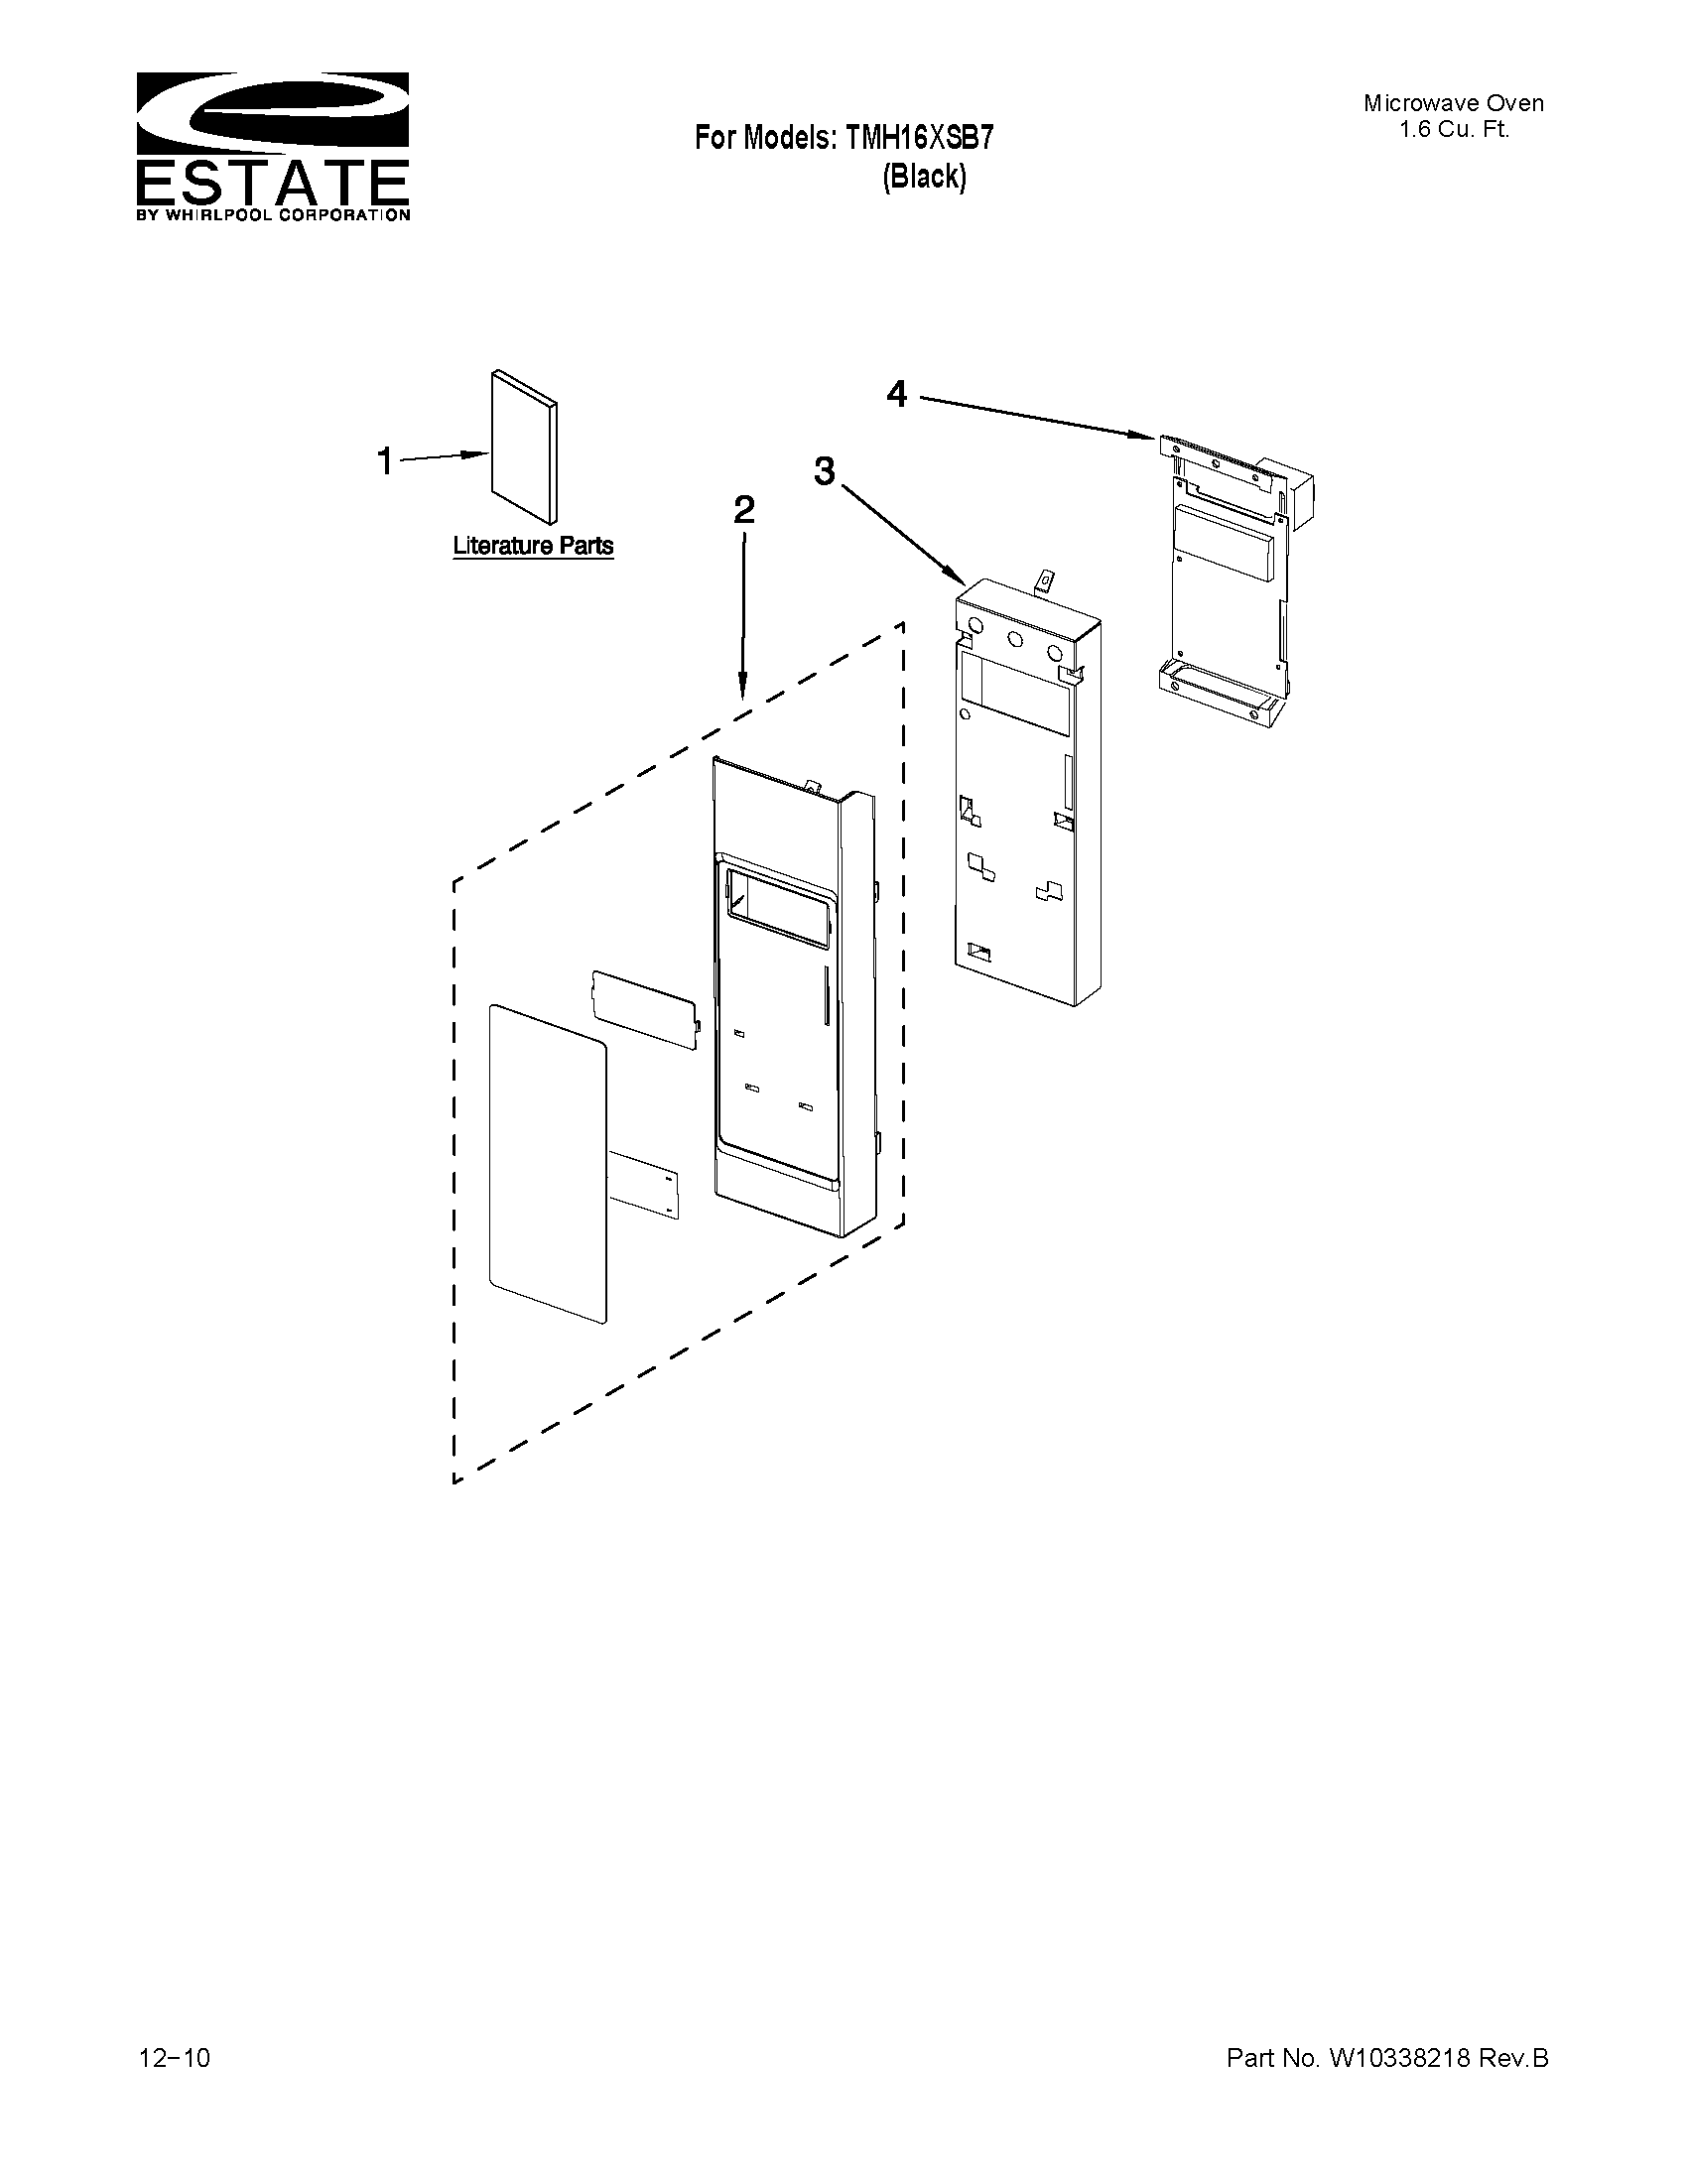 Bestseller: Estate Tmh16xsb Microwave User Manual